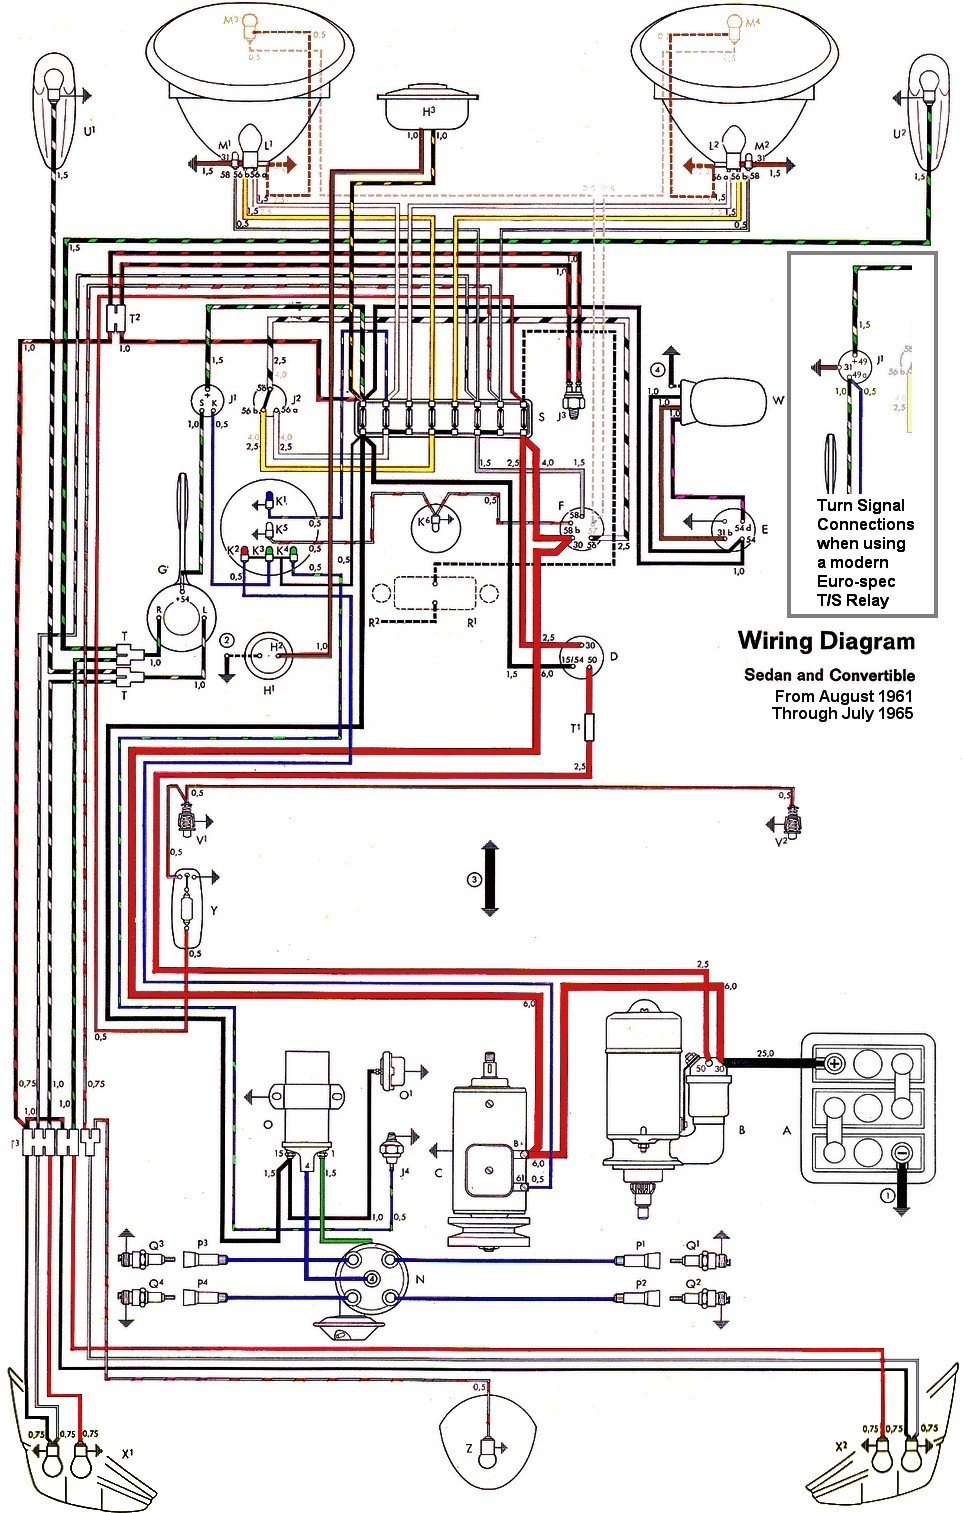 bug_62 65withinset thesamba com type 1 wiring diagrams vw ignition wiring diagram at soozxer.org